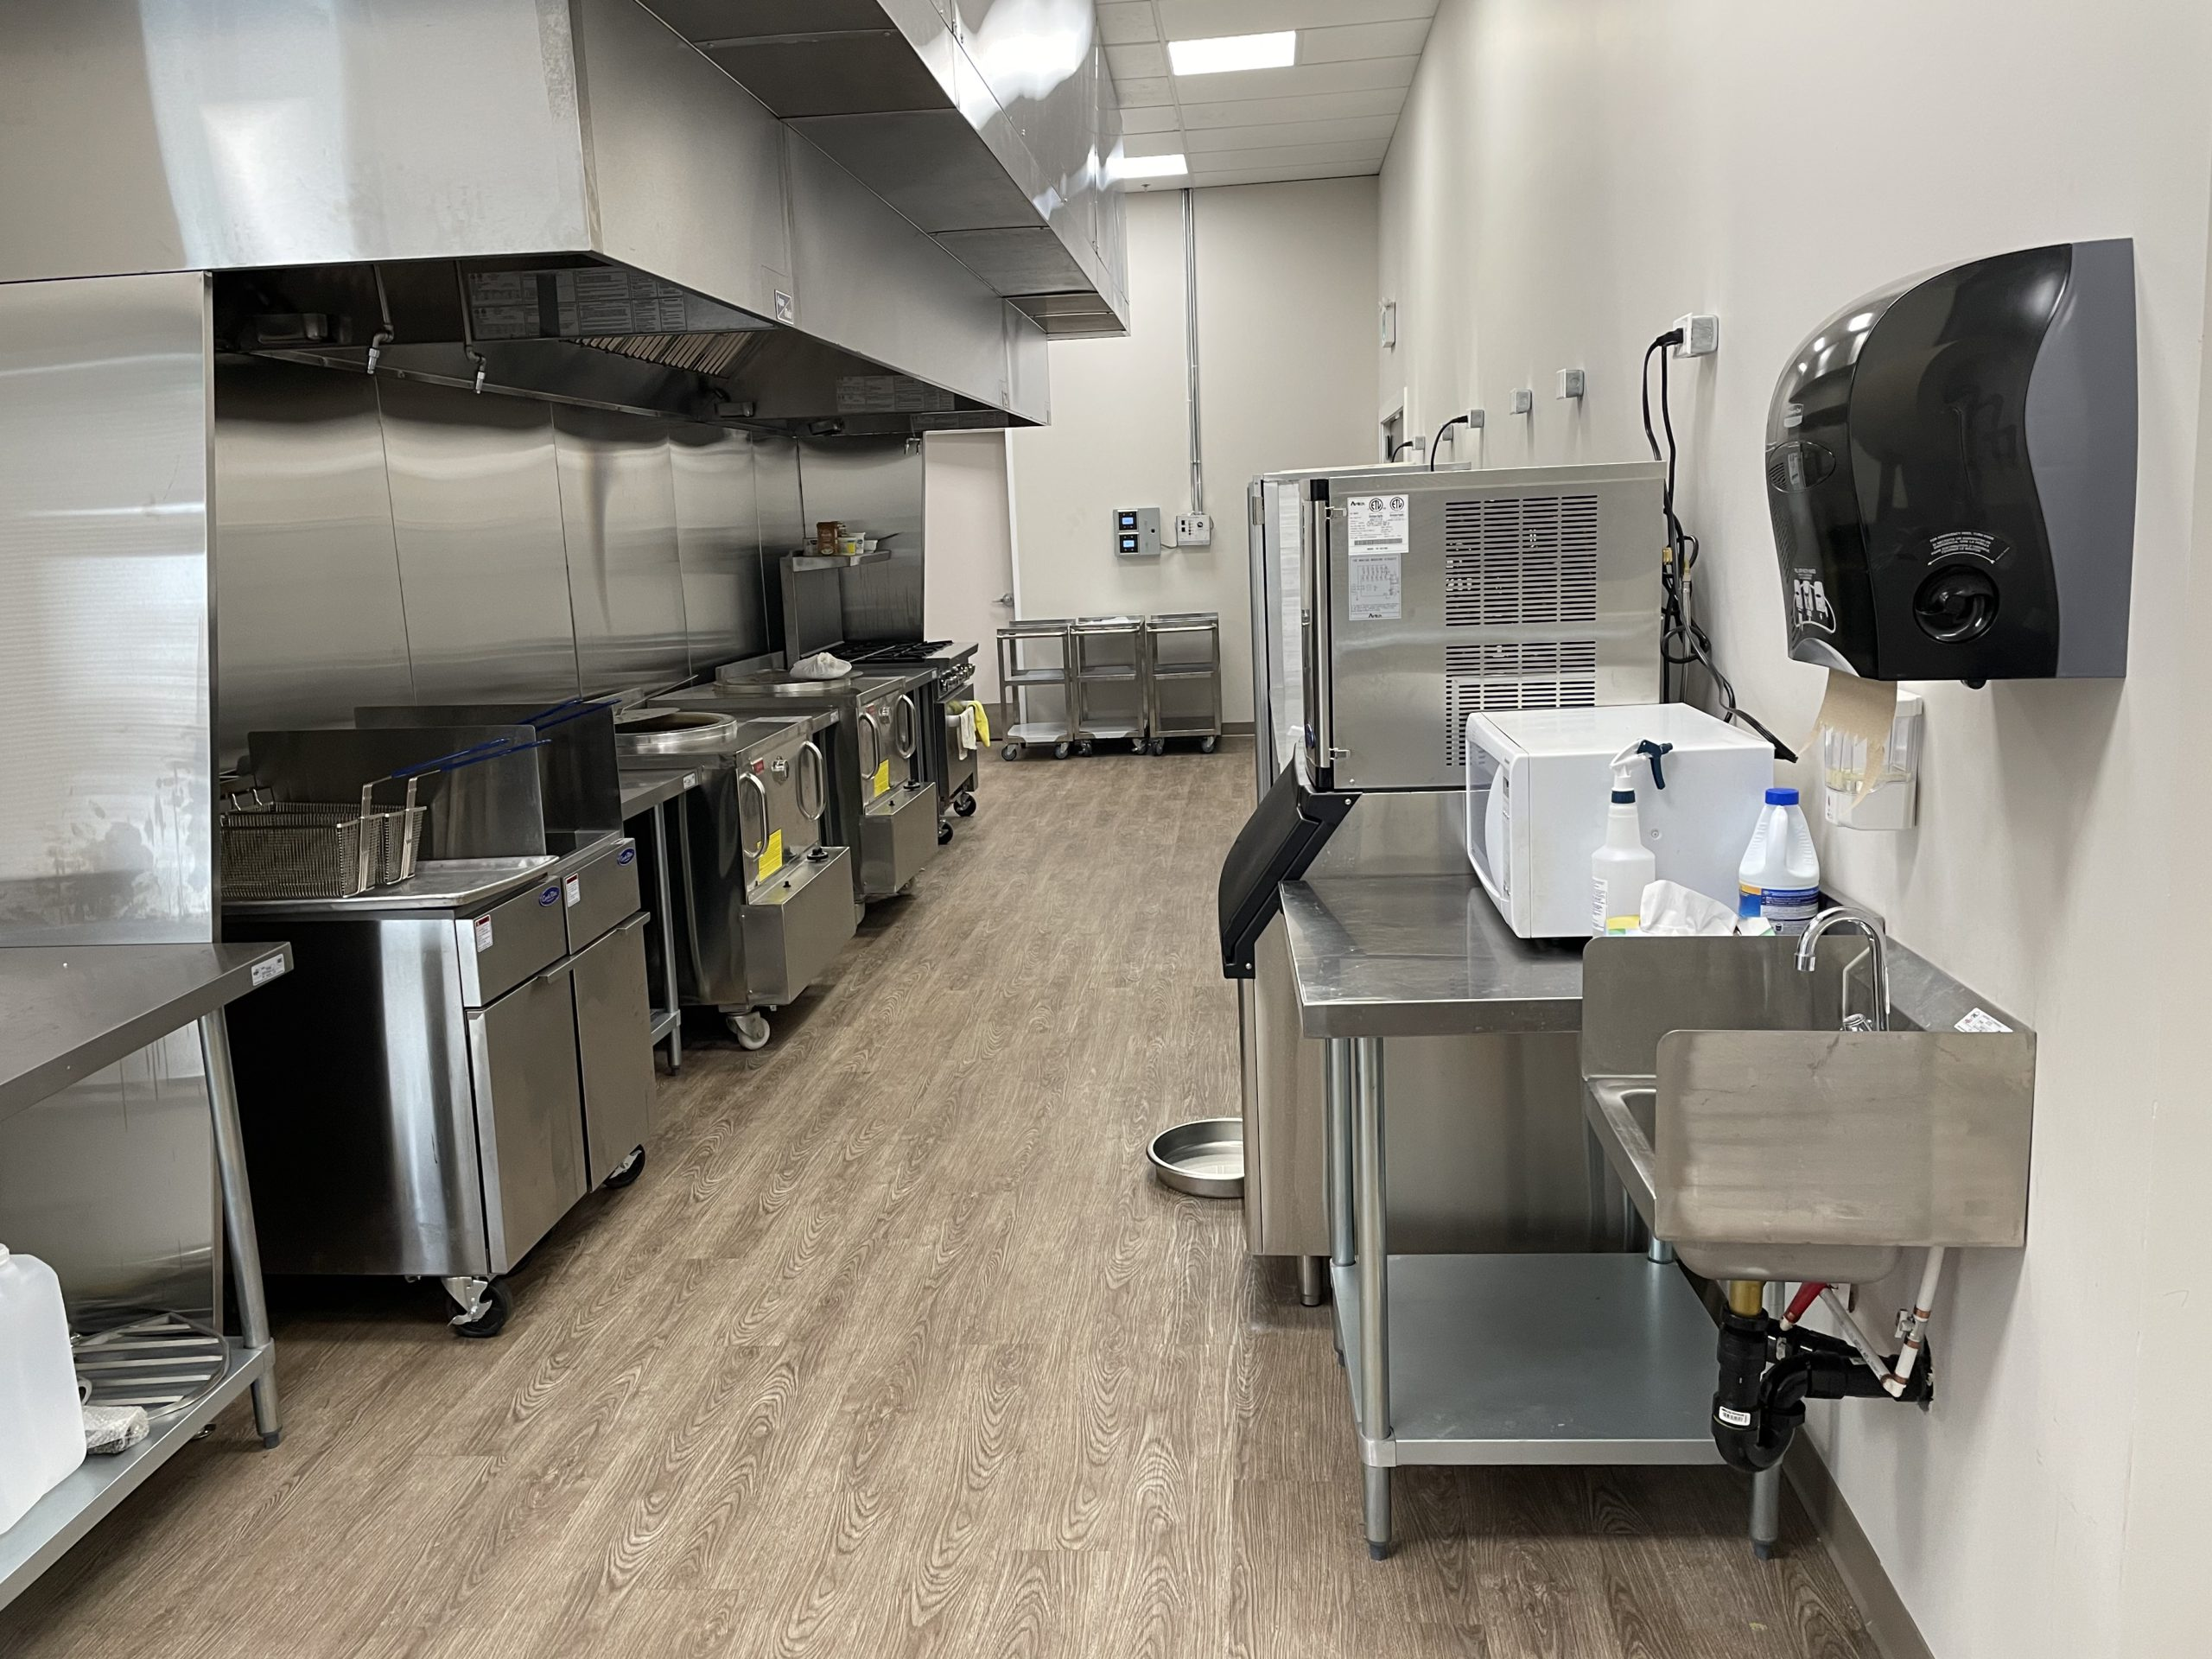 Commercial Kitchen (AHS approved) for rent/lease Sunridge Business Park!!